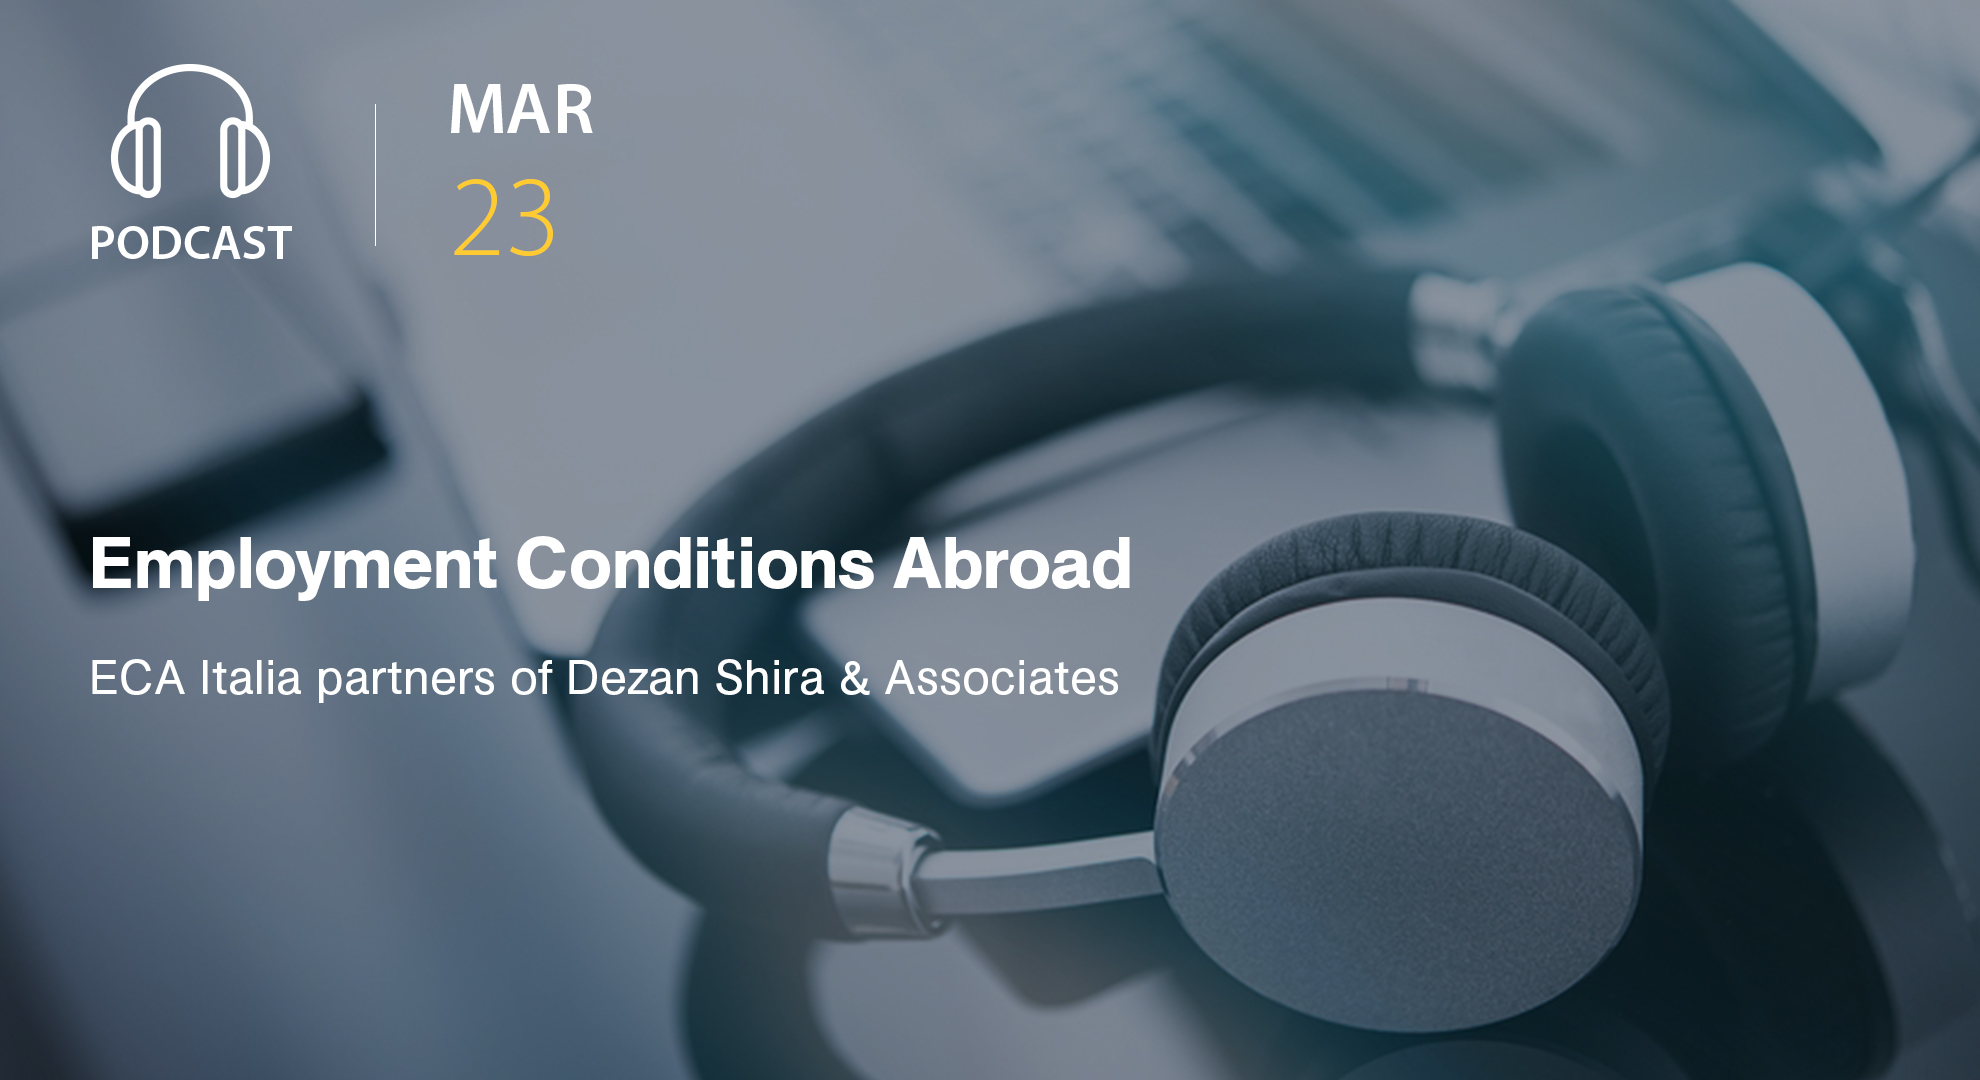 Employment Conditions Abroad